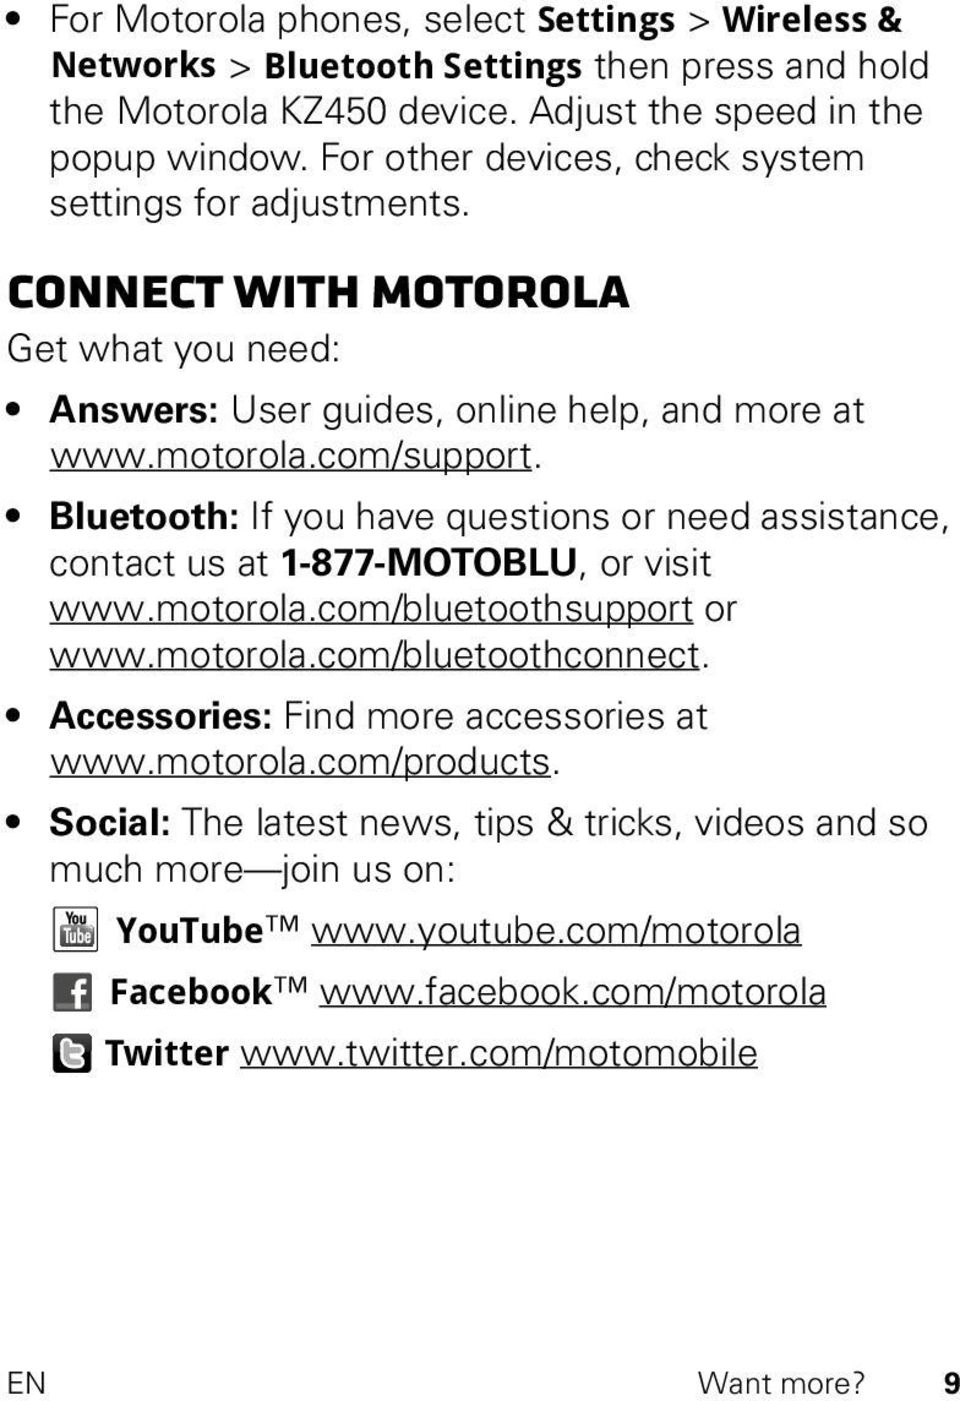 Bluetooth: If you have questions or need assistance, contact us at 1-877-MOTOBLU, or visit www.motorola.com/bluetoothsupport or www.motorola.com/bluetoothconnect.